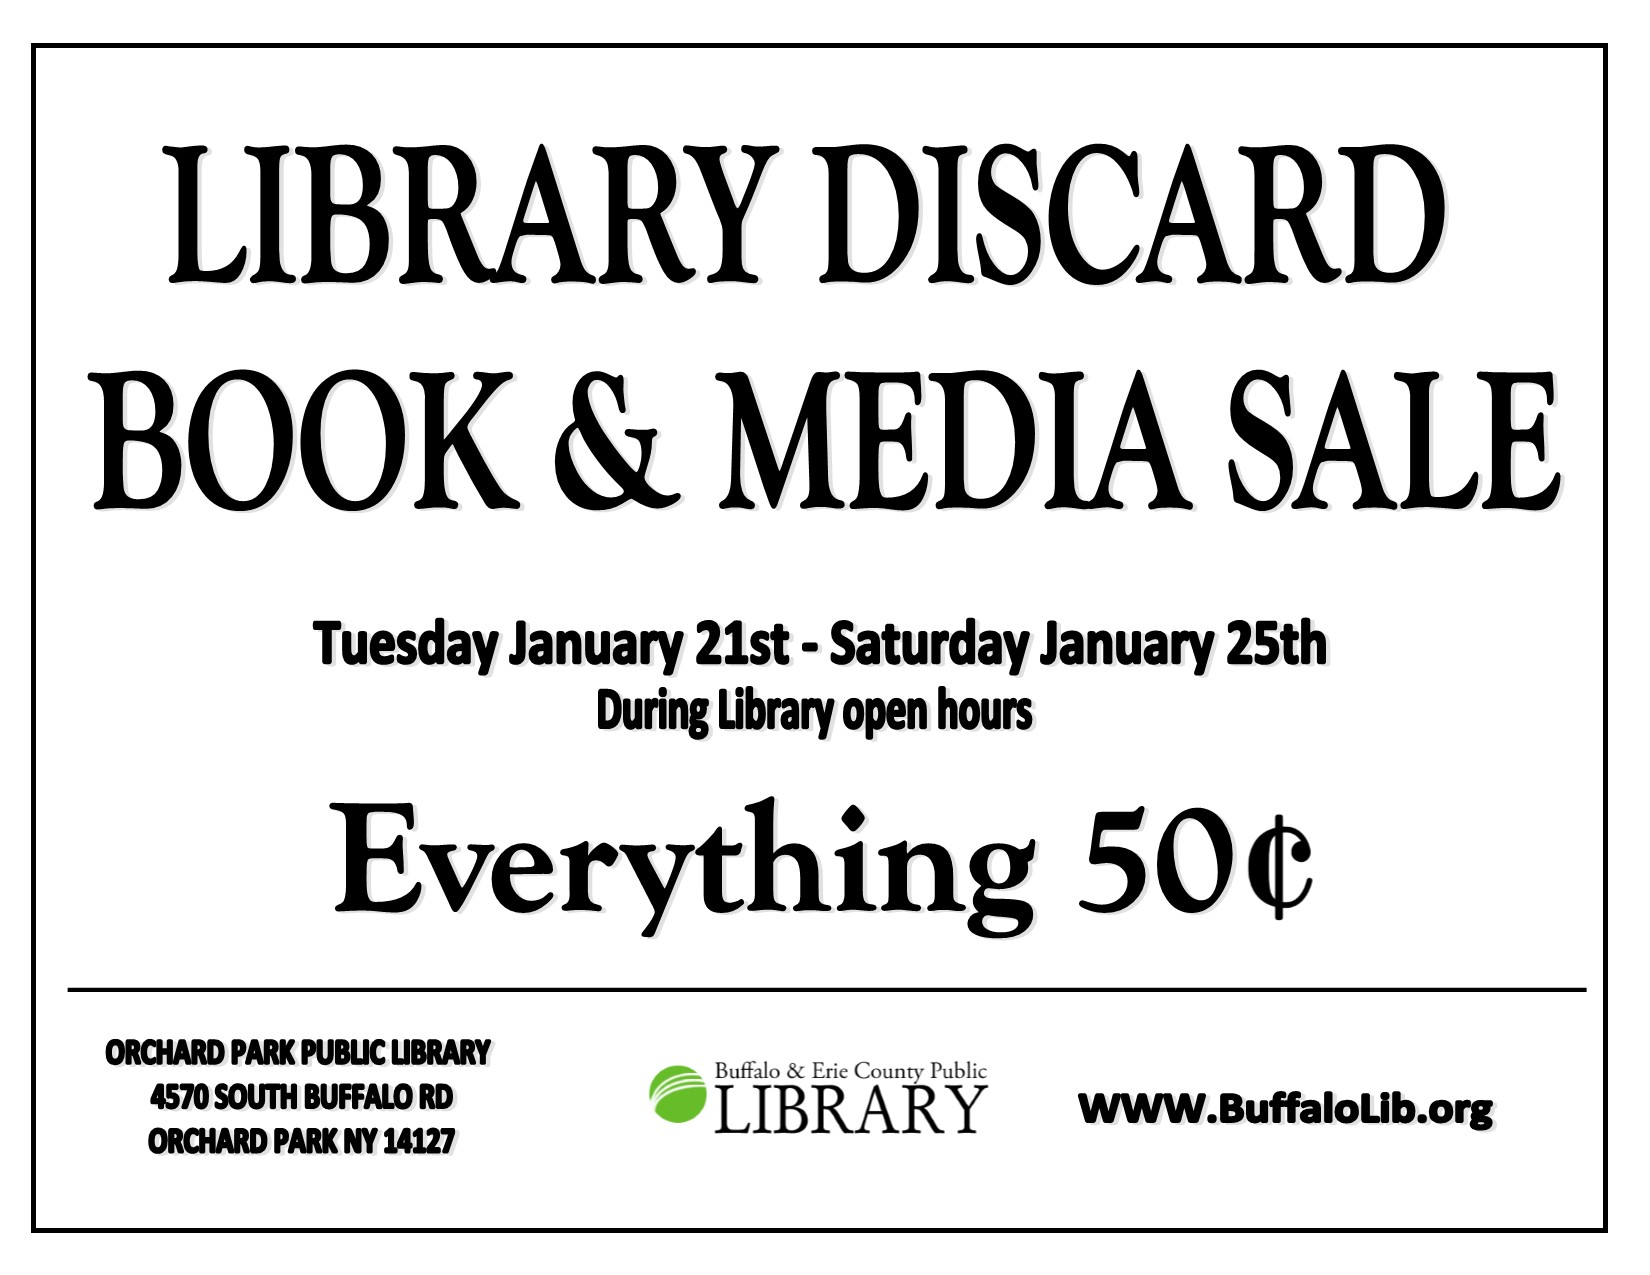 Library Discard Book Sale